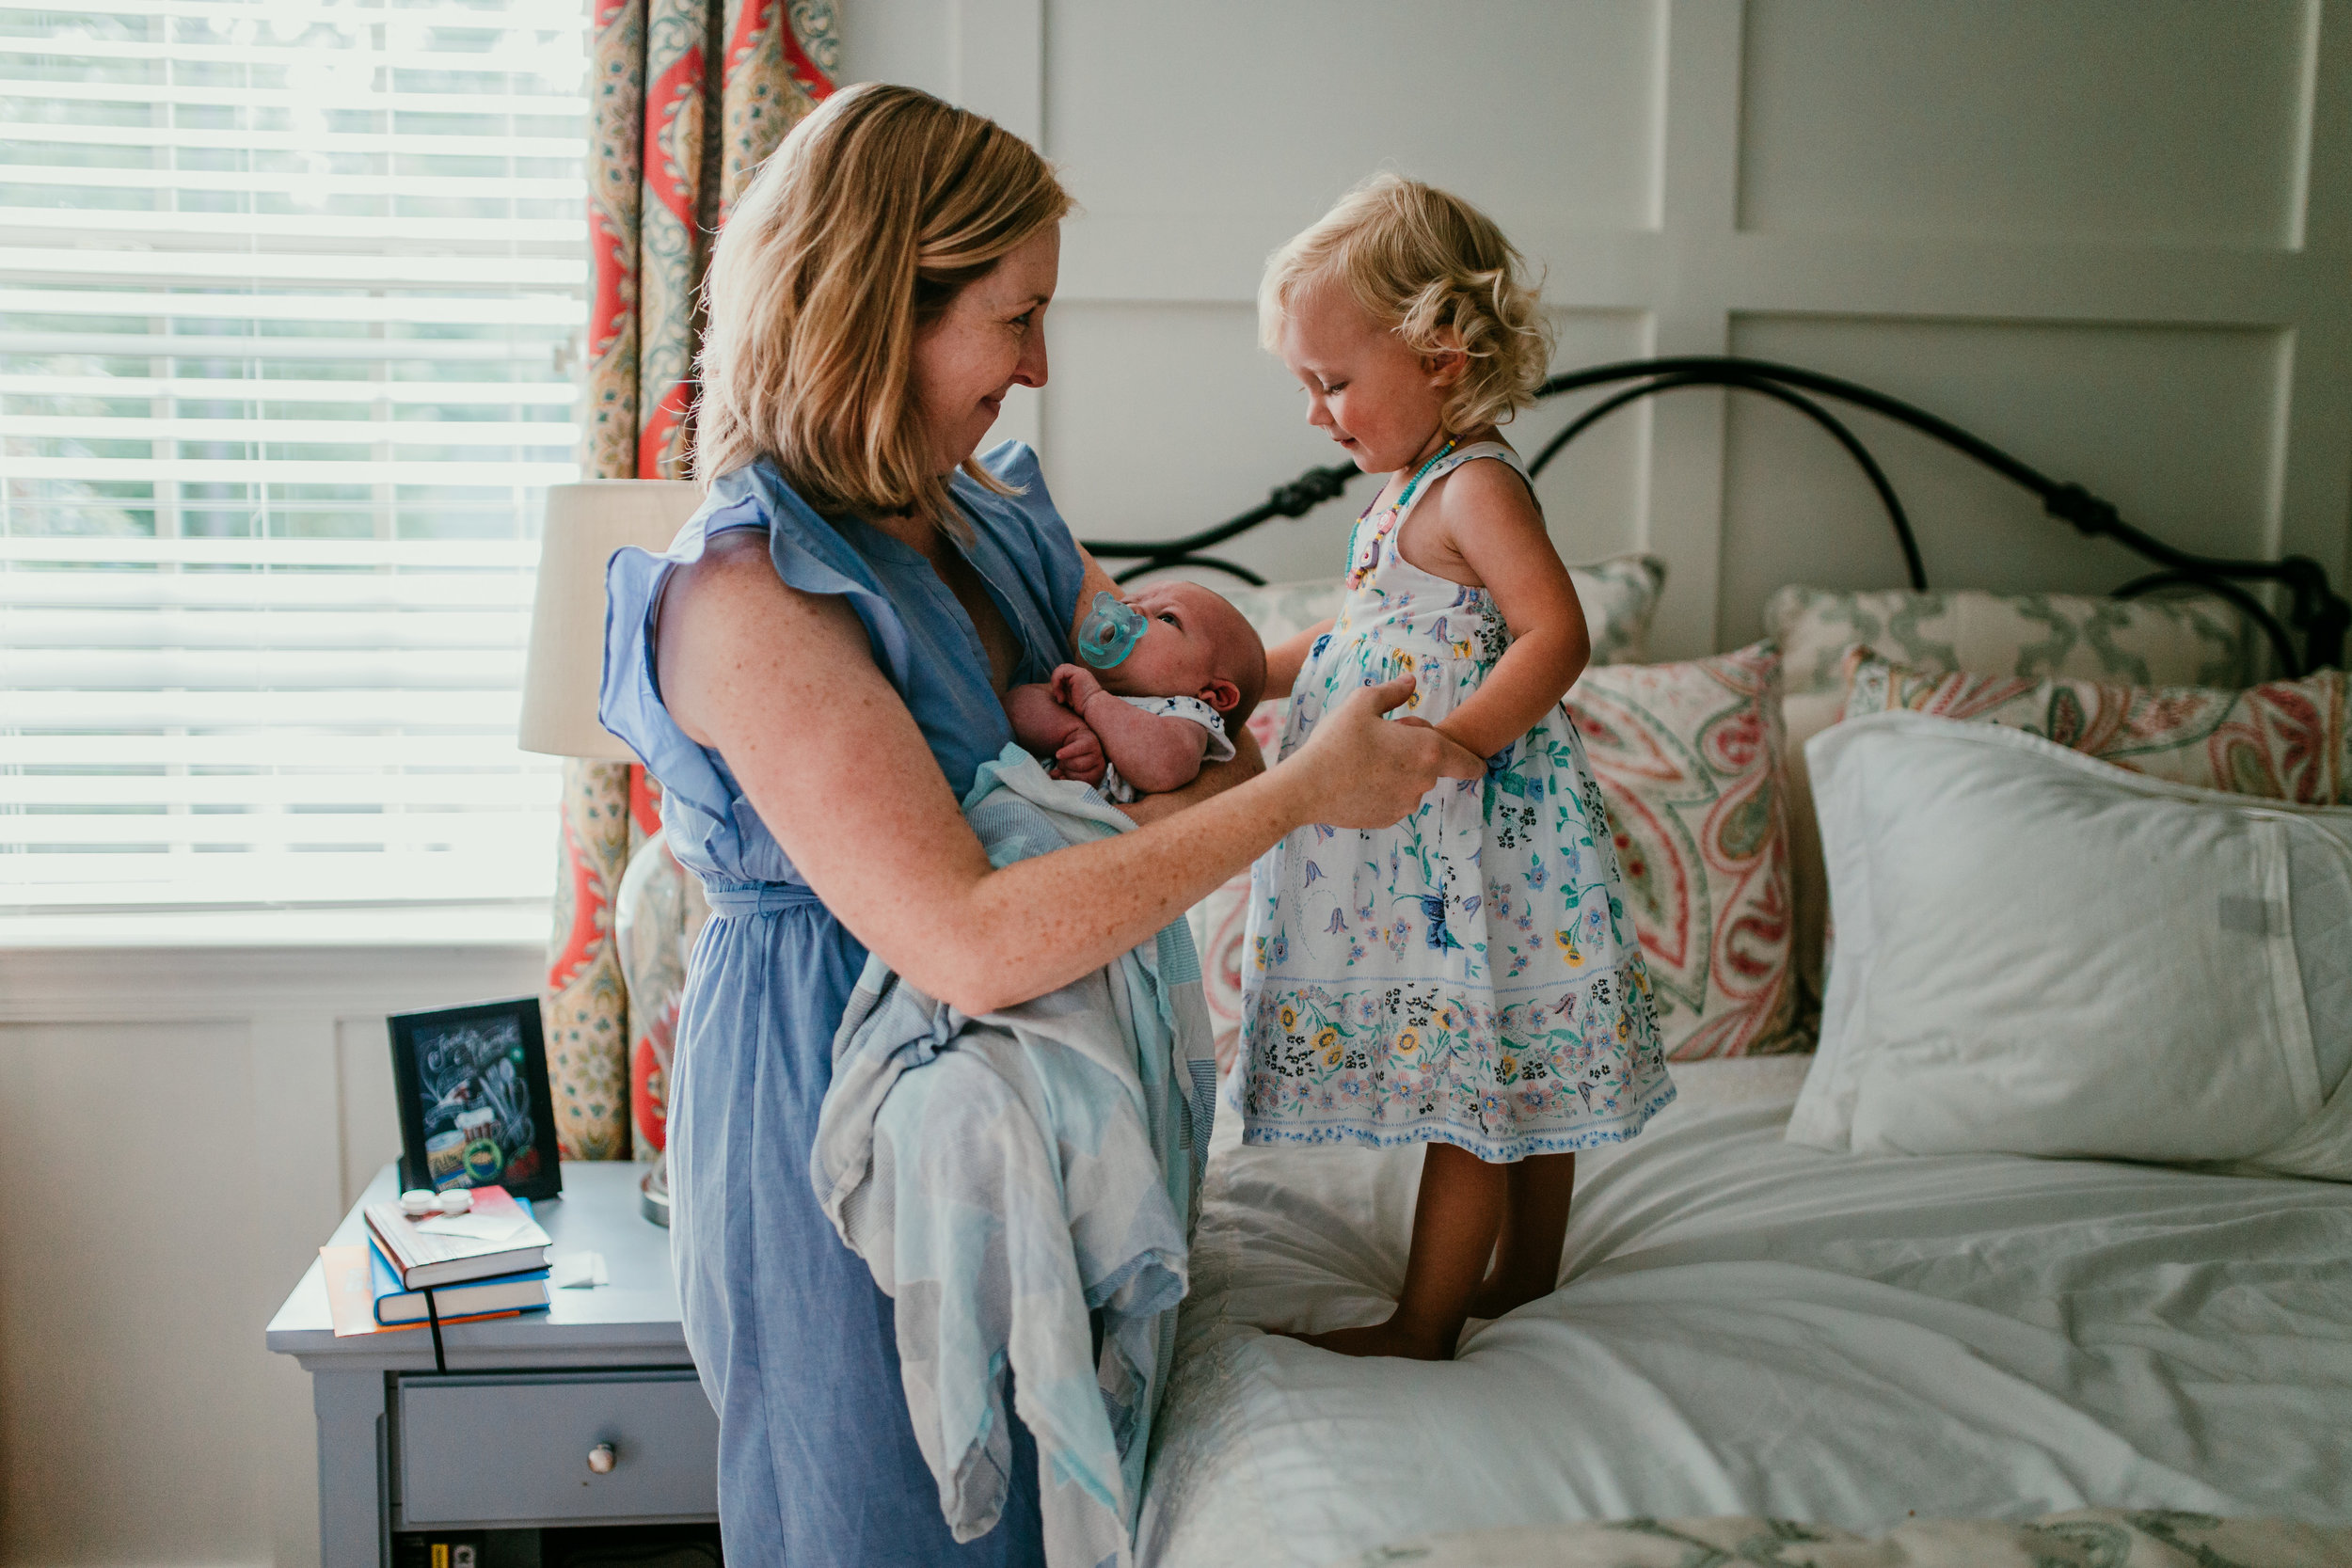 Jack O. Newborn Photography Lifestyle | Hanna Hill Photography | Raleigh Newborn Lifestyle Photographer